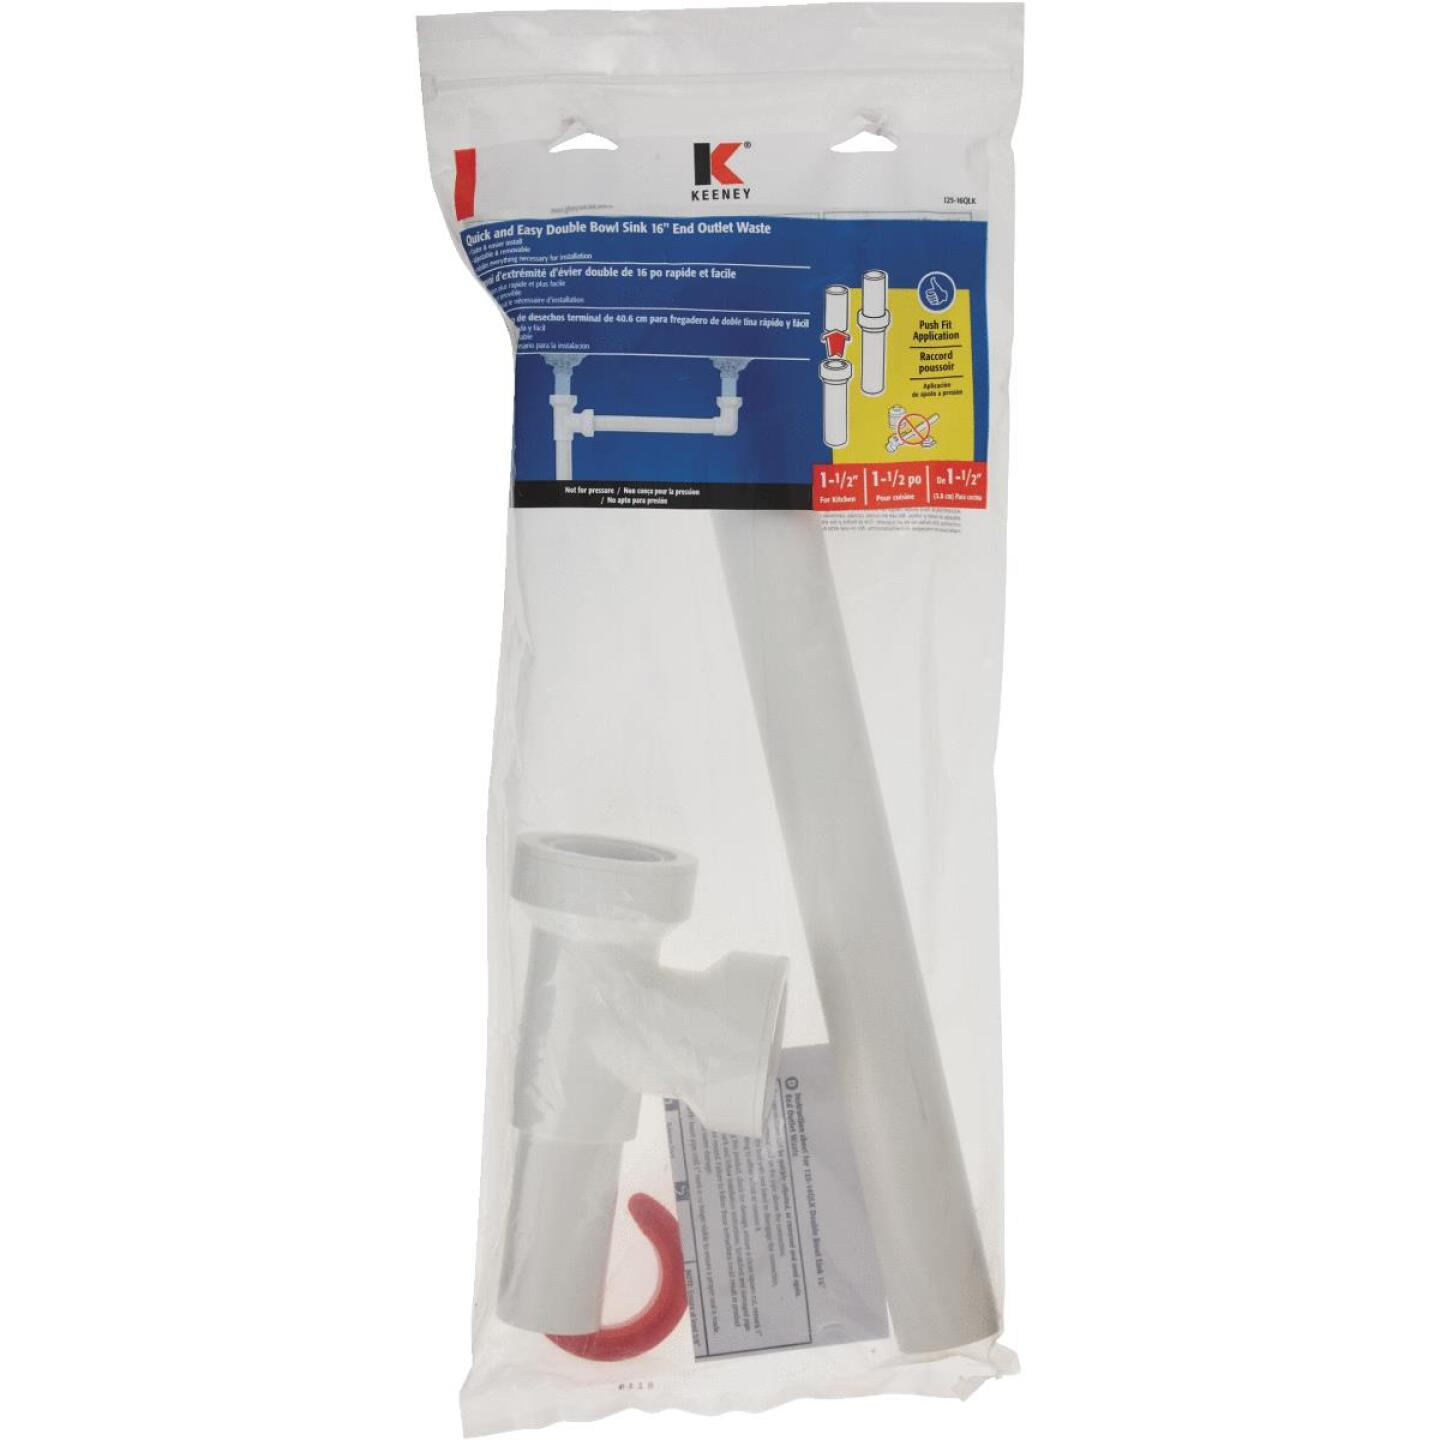 Keeney Insta-Plumb 1-1/2 In. White Plastic End Outlet Waste Image 2